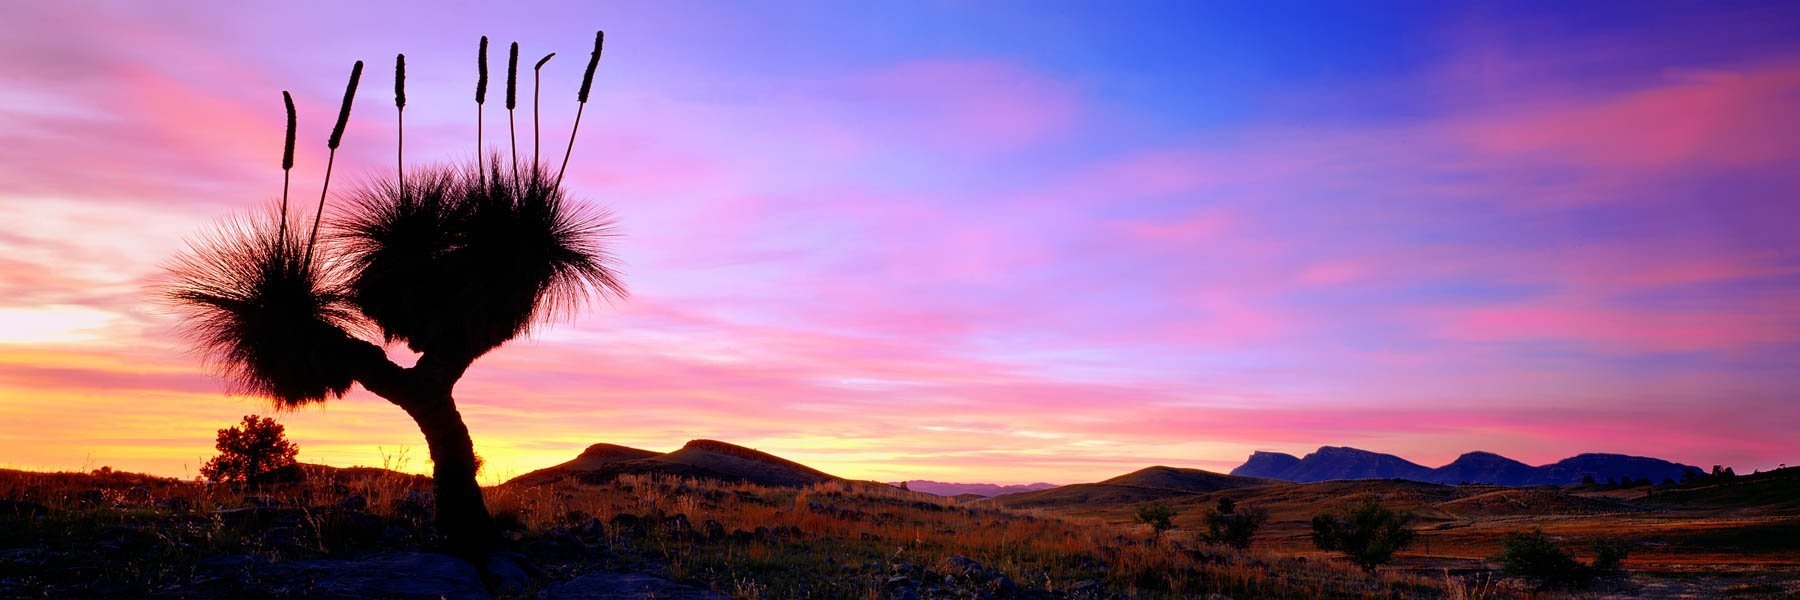 Grass tree silhouetted agains the morning sky, Flinders Ranges, SA, Australia.